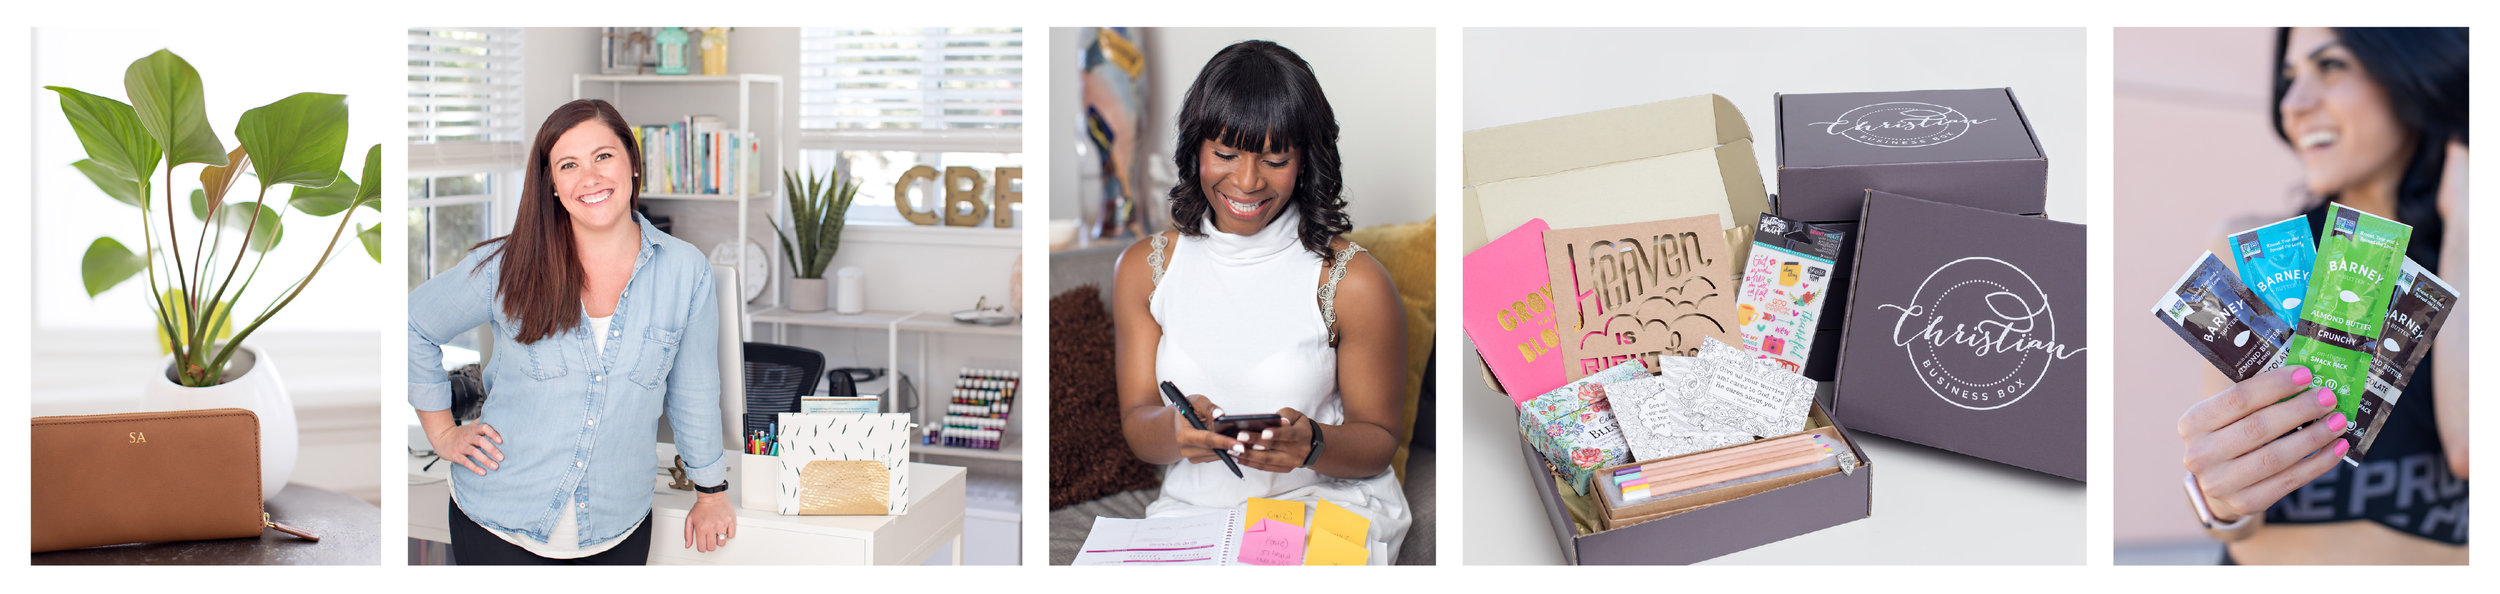 Branding photography photo collage banner: image of leather wallet with plant; Caucasian female business owner in office; African American, female business owner looking at phone; product photography of subscription box; brand partnership influencer blogger.